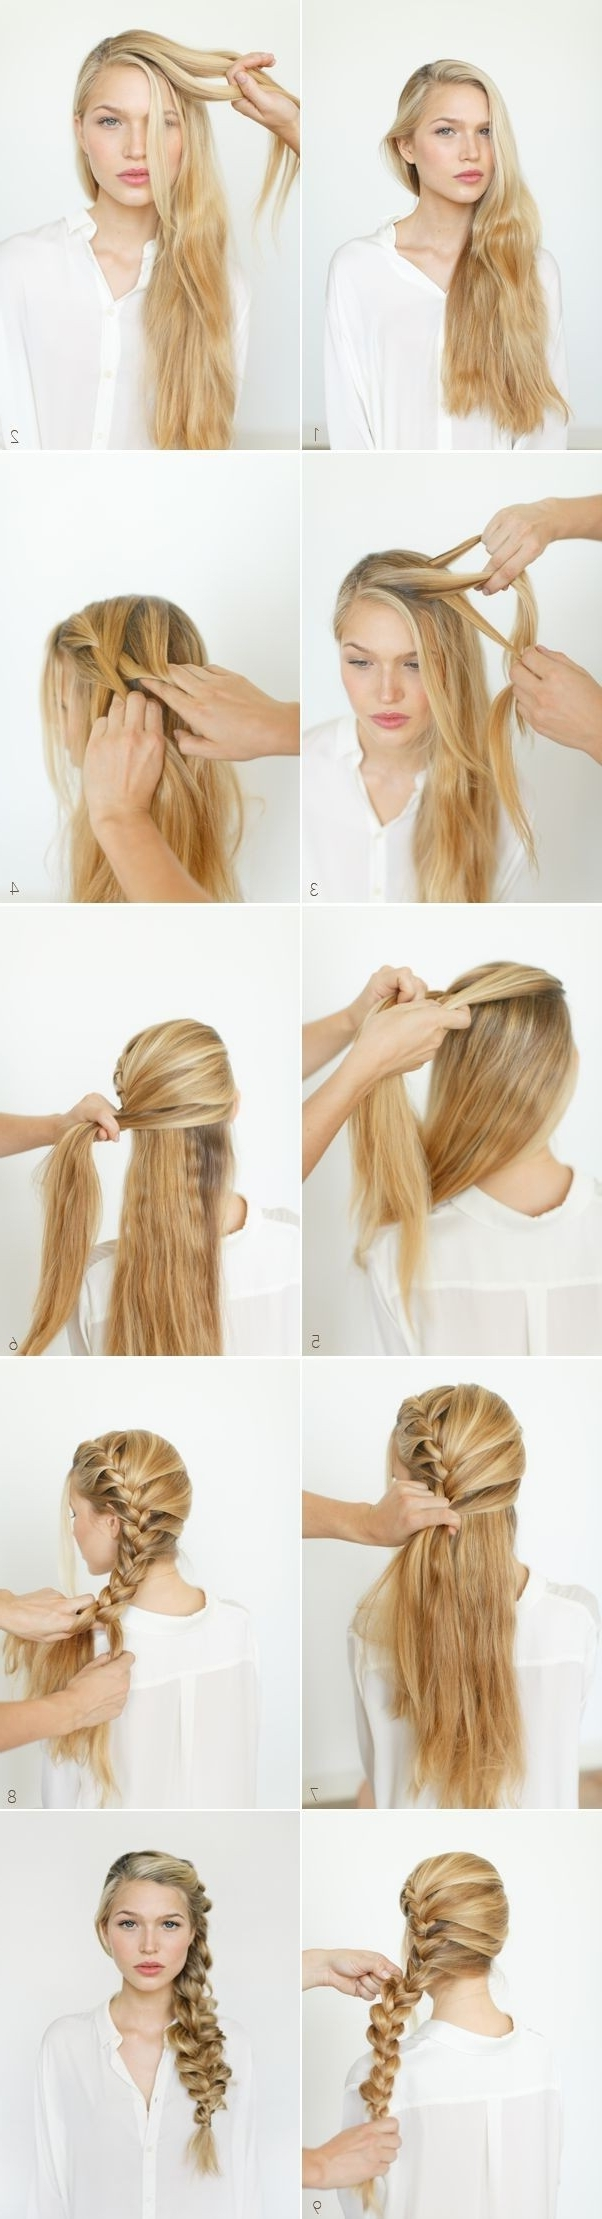 Recent Messy Loosely Braided Side Downdo Pertaining To Stepstep Hairstyles For Long Hair: Long Hairstyles Ideas (View 12 of 15)